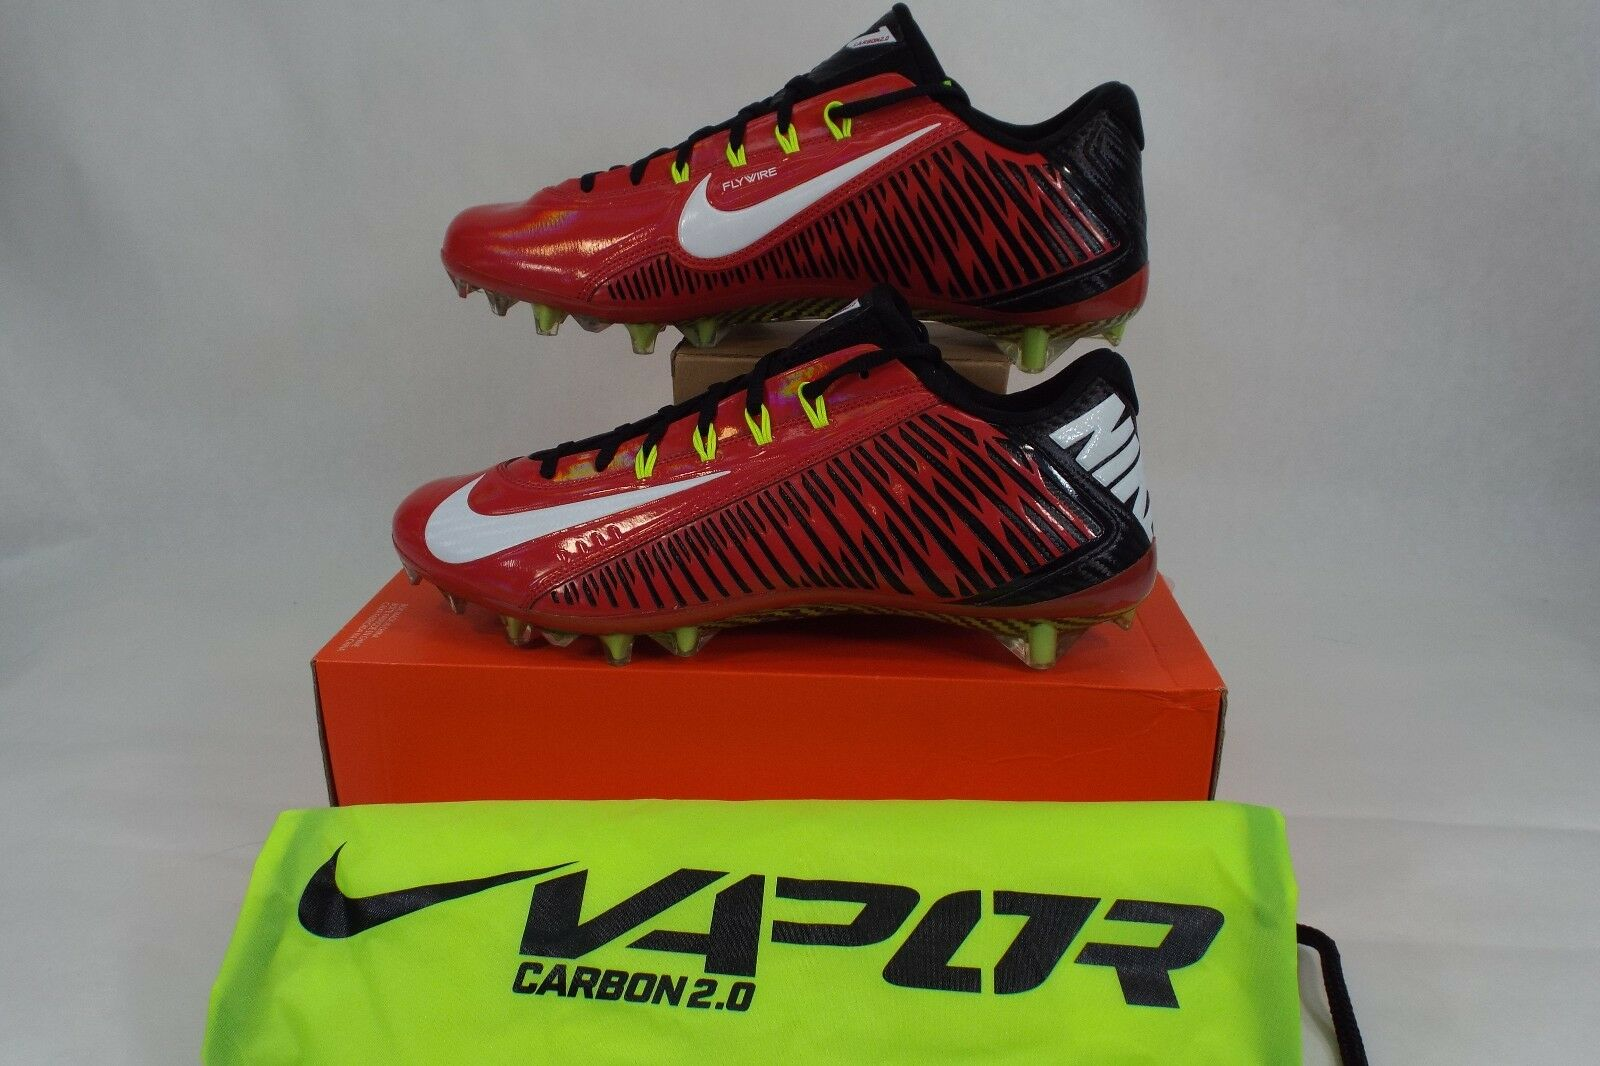 New Mens 11 11 11 NIKE Vapor Carbon ELT 2014 TD Red Black Cleats shoes  160 631425-600 53050a